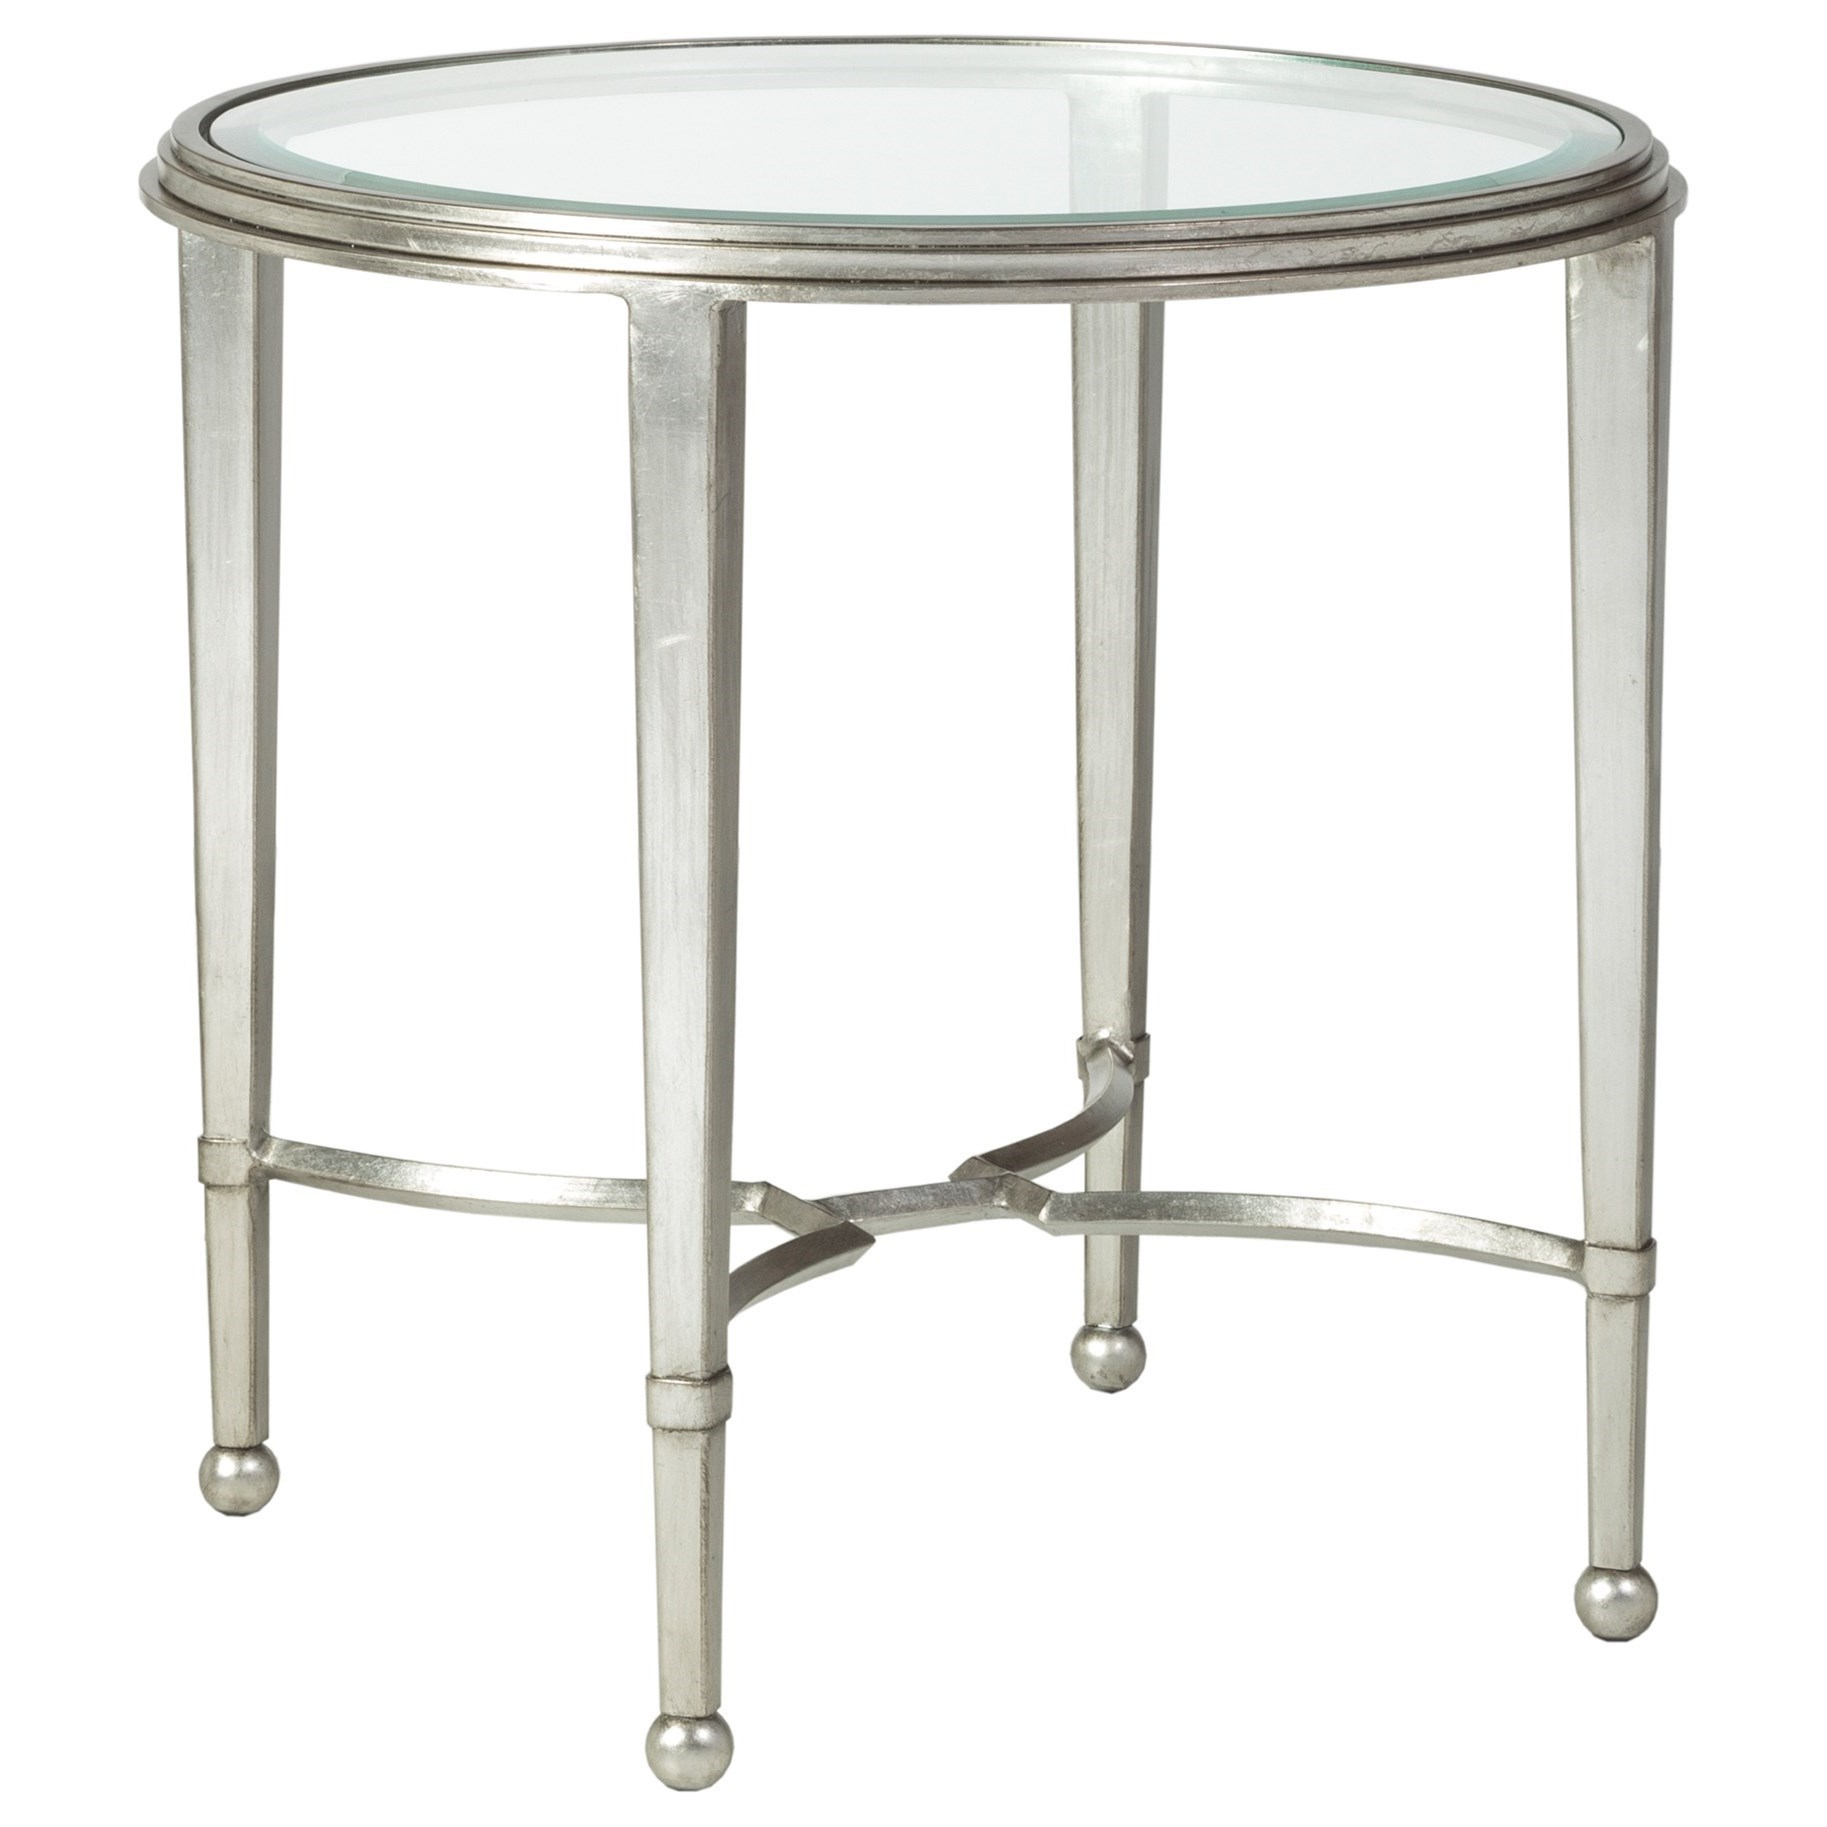 Metal Designs Sangiovese Round End Table by Artistica at Alison Craig Home Furnishings